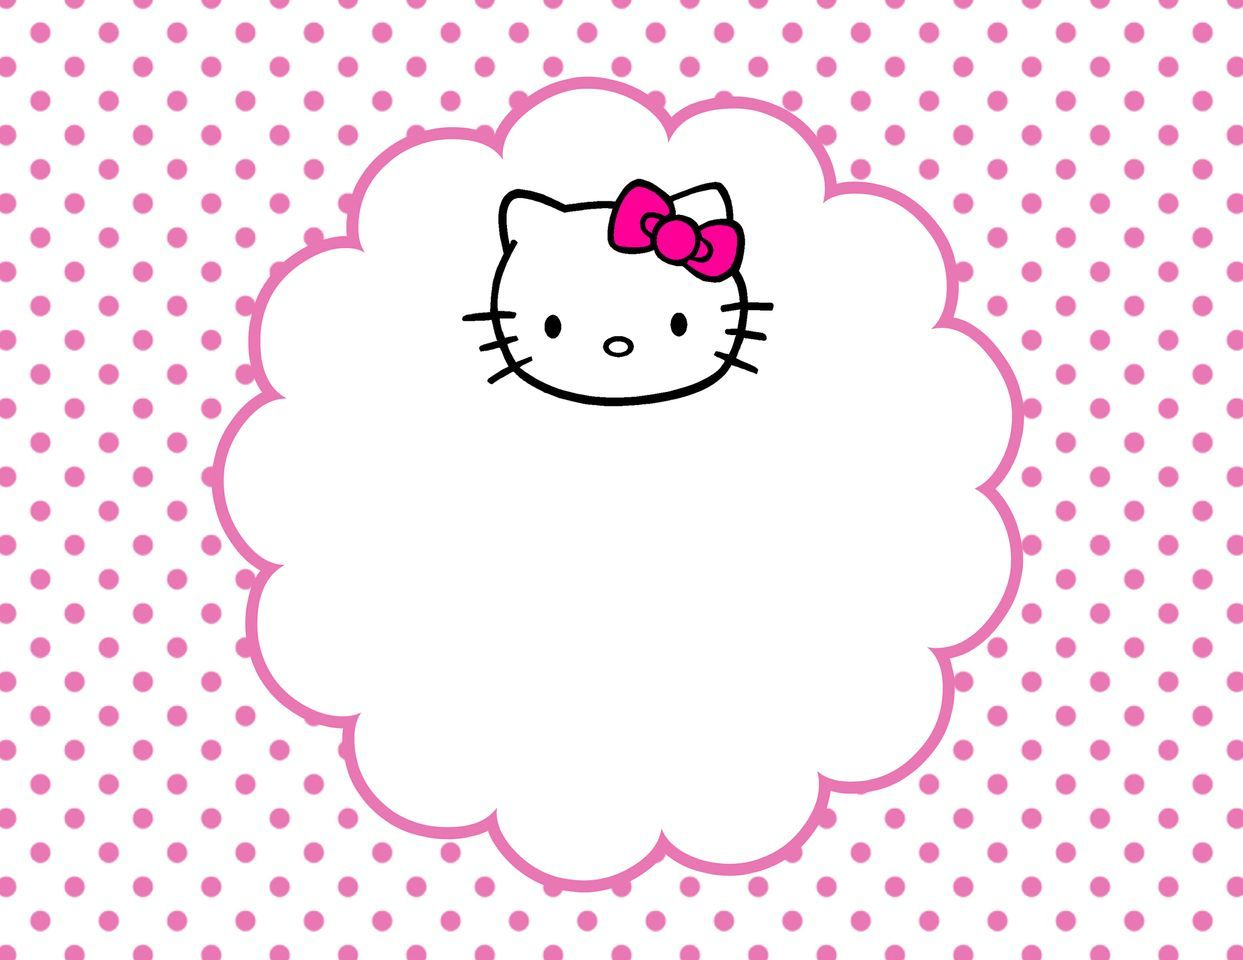 Popular Wallpaper Hello Kitty Cupcake - 77beafd0fc5a1cefb52a56a577ca7cb8  Perfect Image Reference_9333.jpg